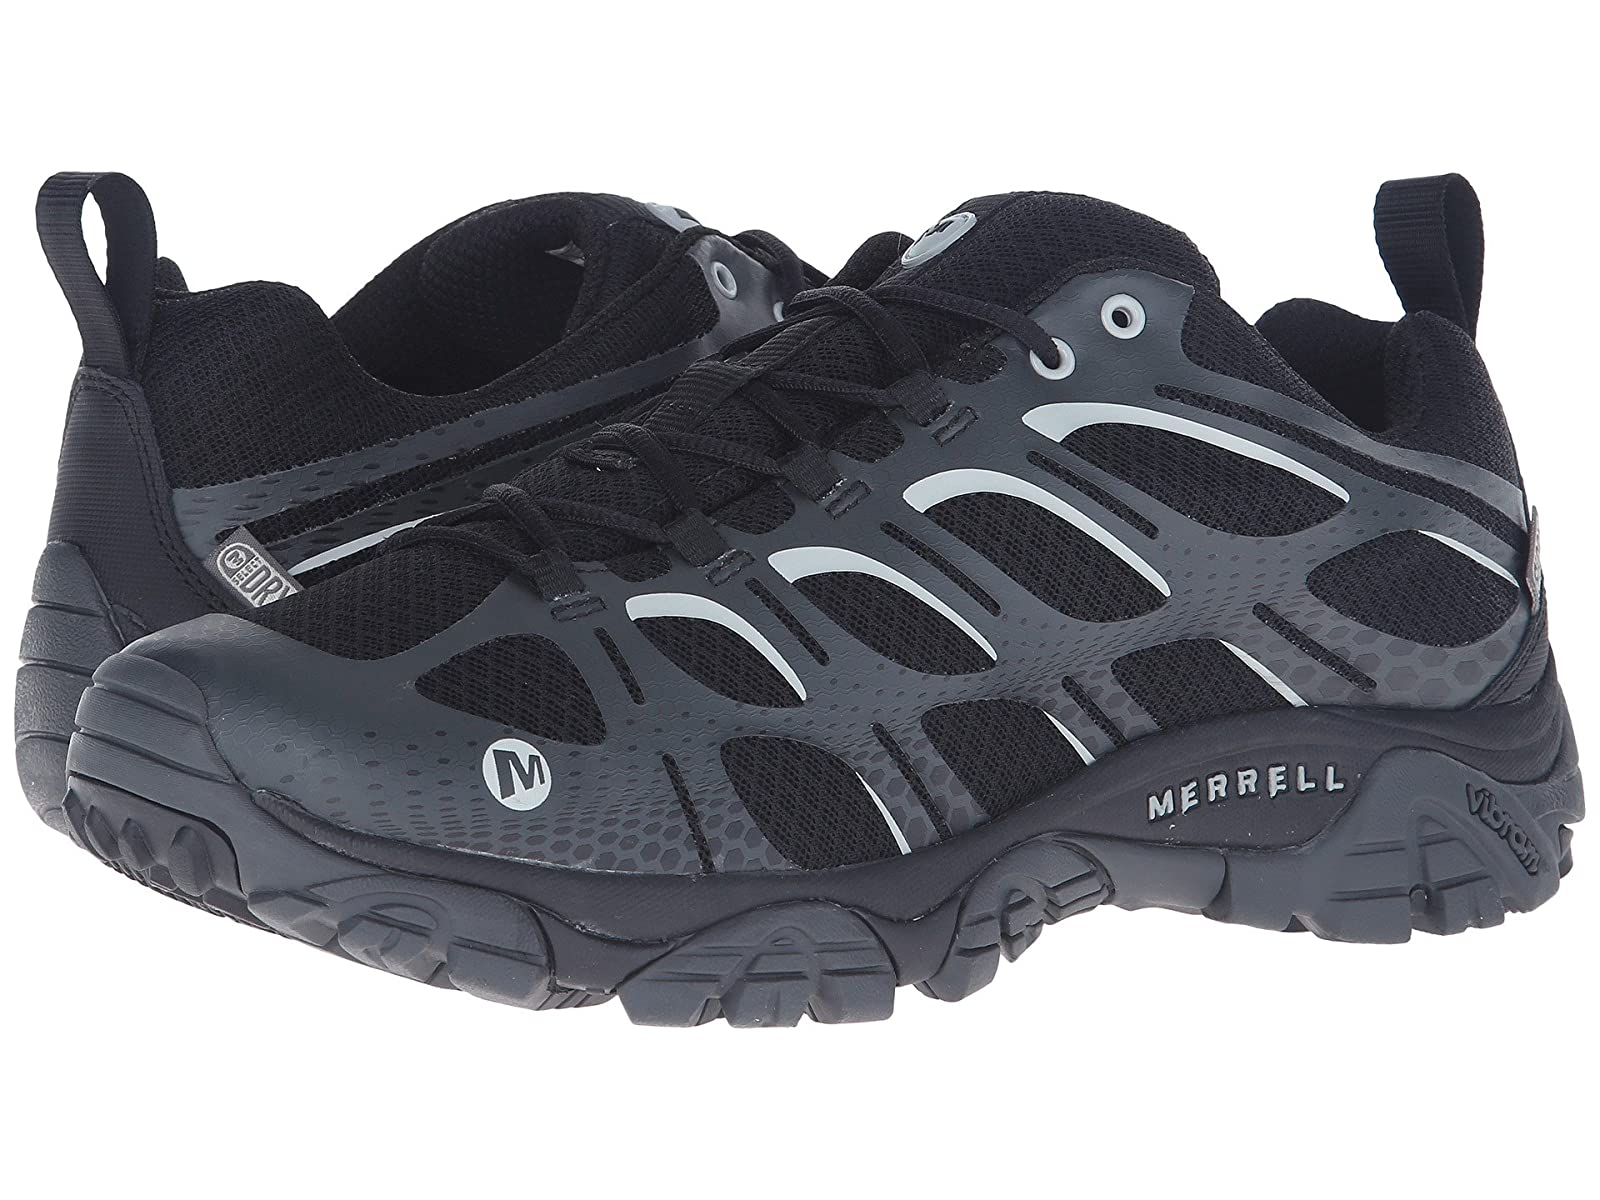 Merrell Moab Edge WaterproofCheap and distinctive eye-catching shoes